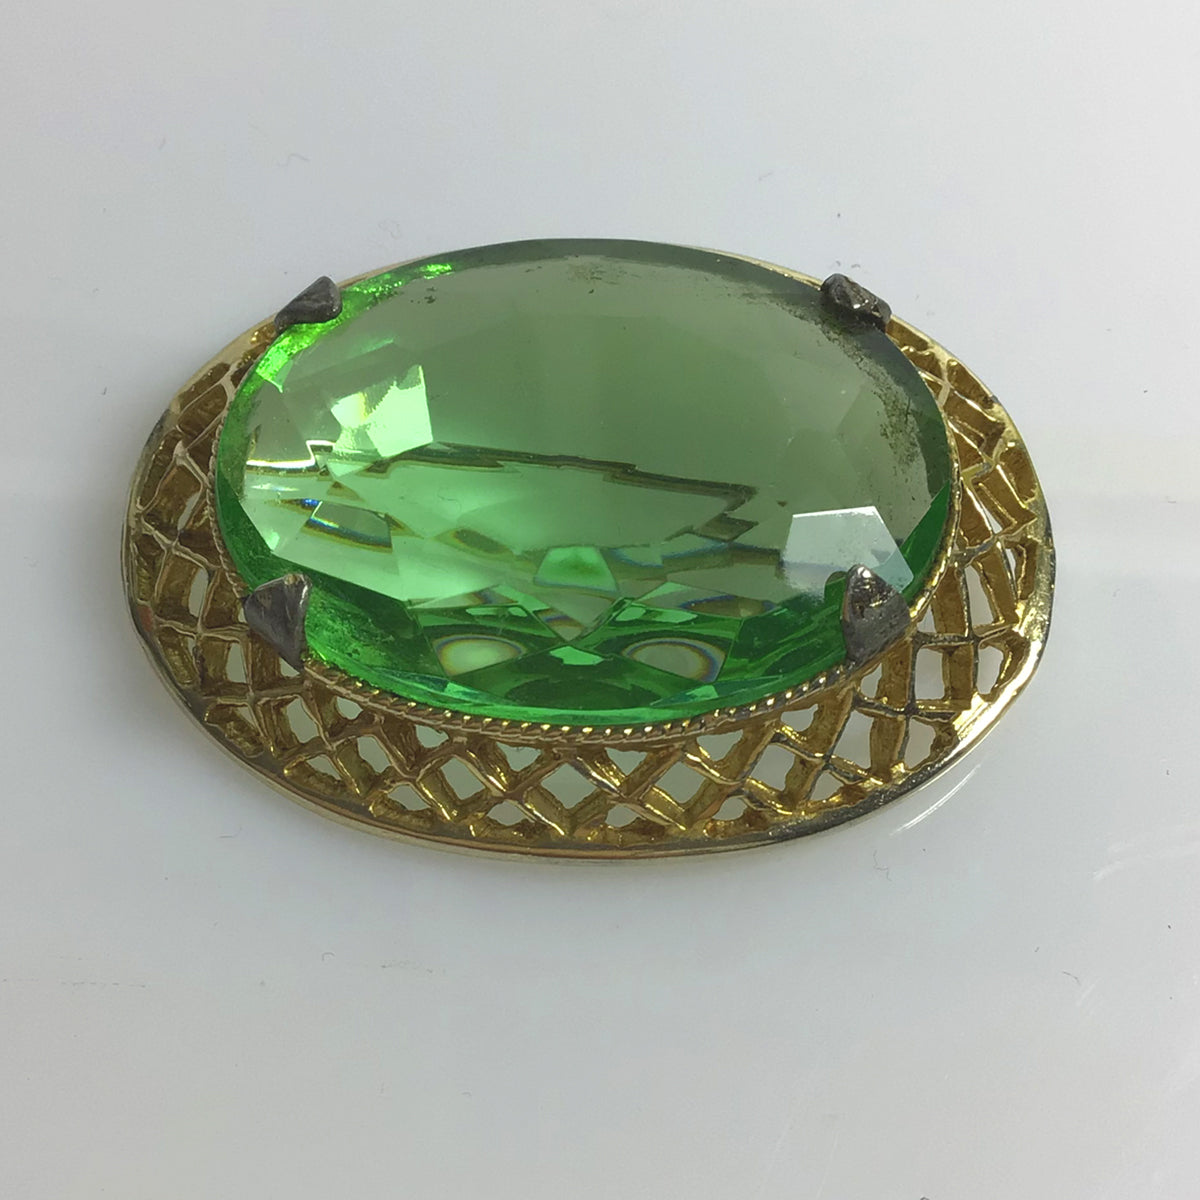 Gold plated and faux peridot vintage brooch